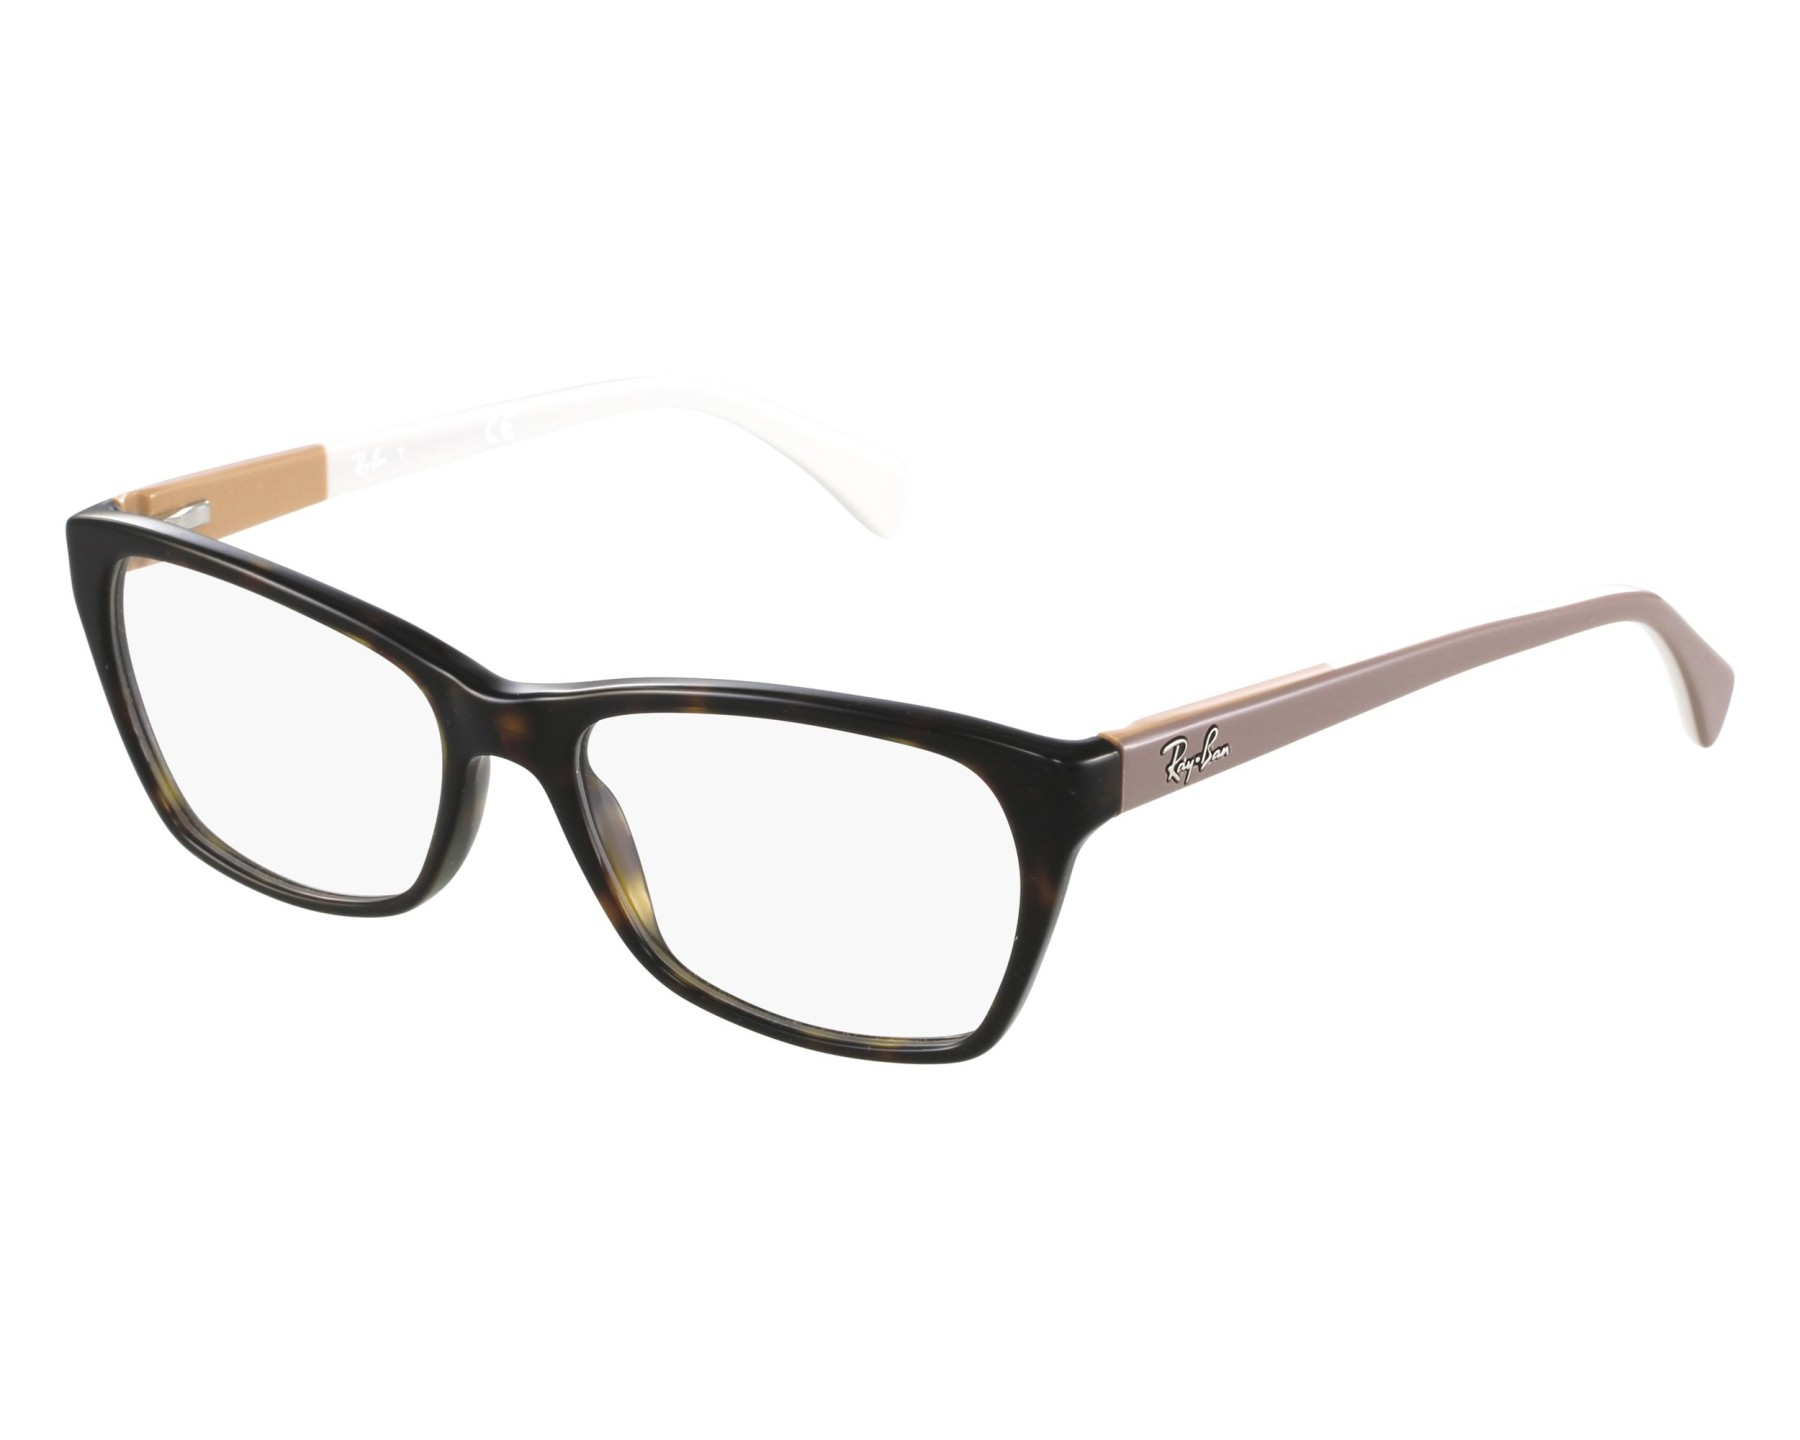 7000b74a85 eyeglasses Ray-Ban RX-5298 5549 53-17 Havana Taupe front view